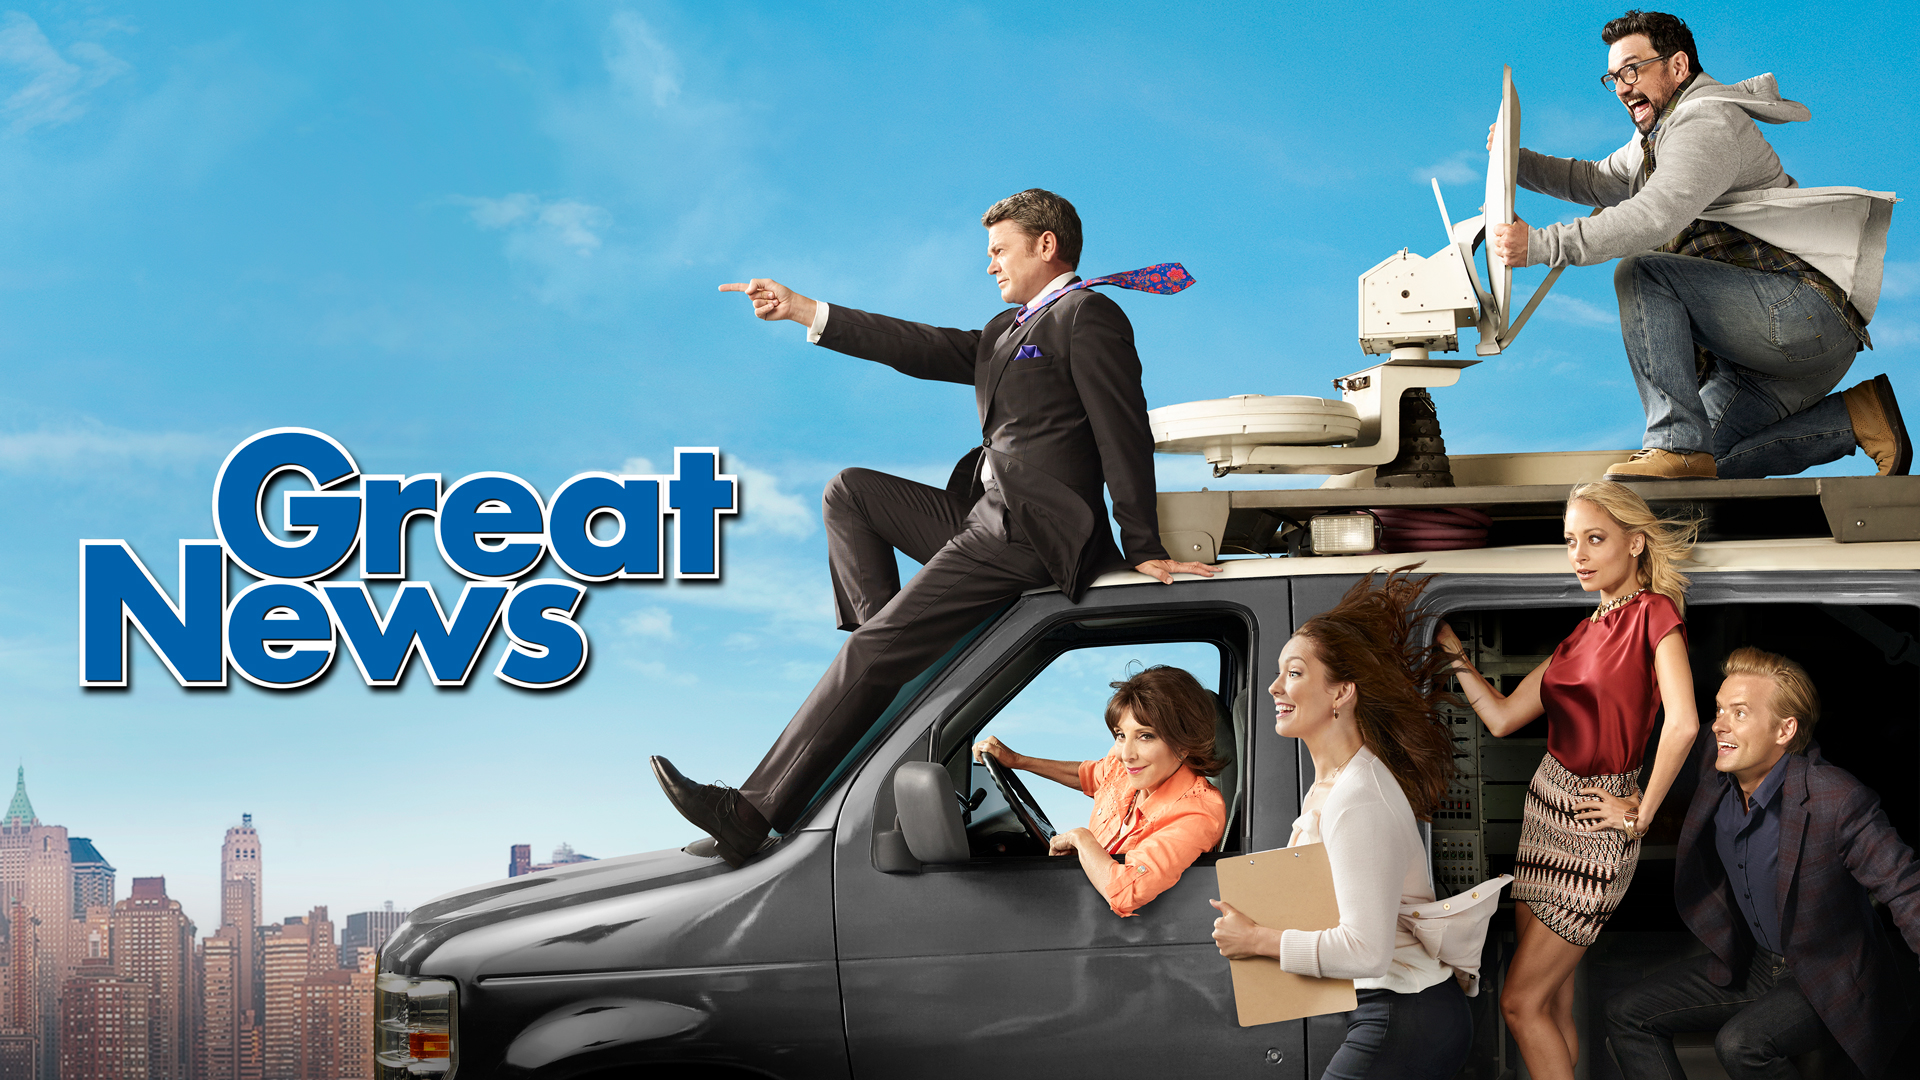 Watch great news episodes nbc publicscrutiny Gallery